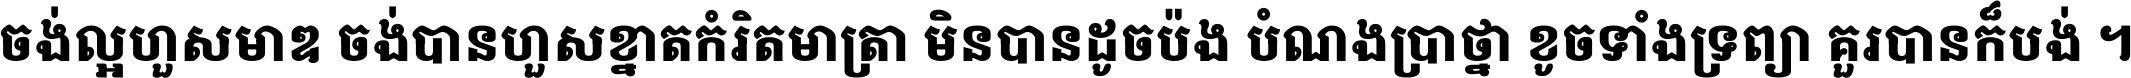 Noto Serif Khmer SemiCondensed Black